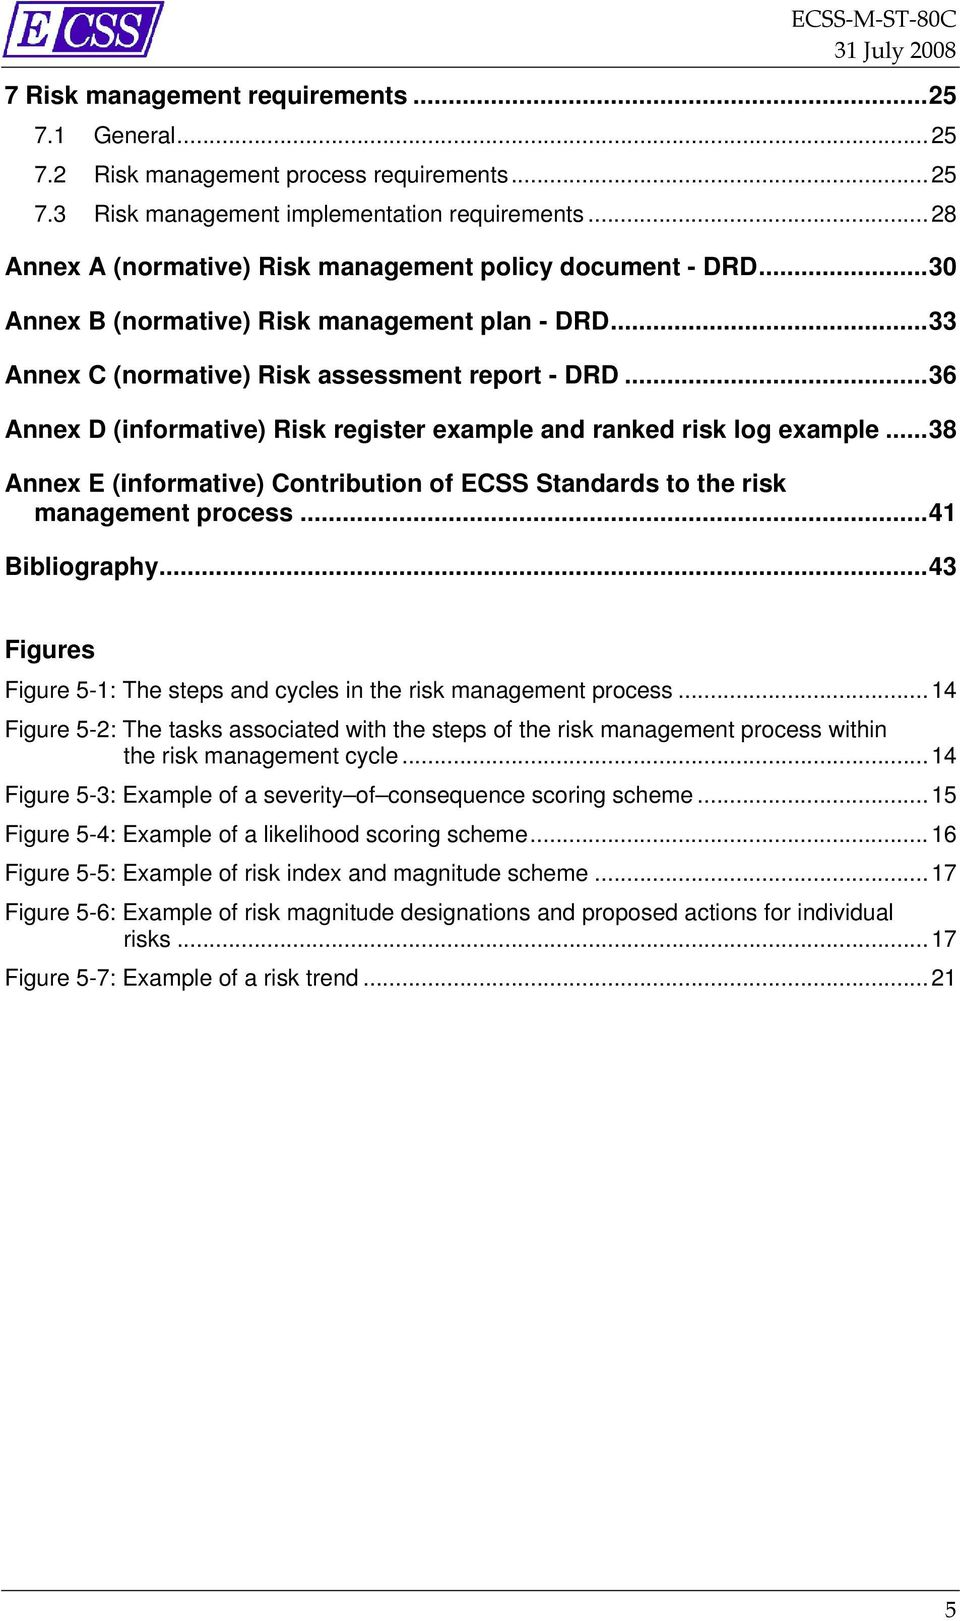 ..36 Annex D (informative) Risk register example and ranked risk log example...38 Annex E (informative) Contribution of ECSS Standards to the risk management process...41 Bibliography.